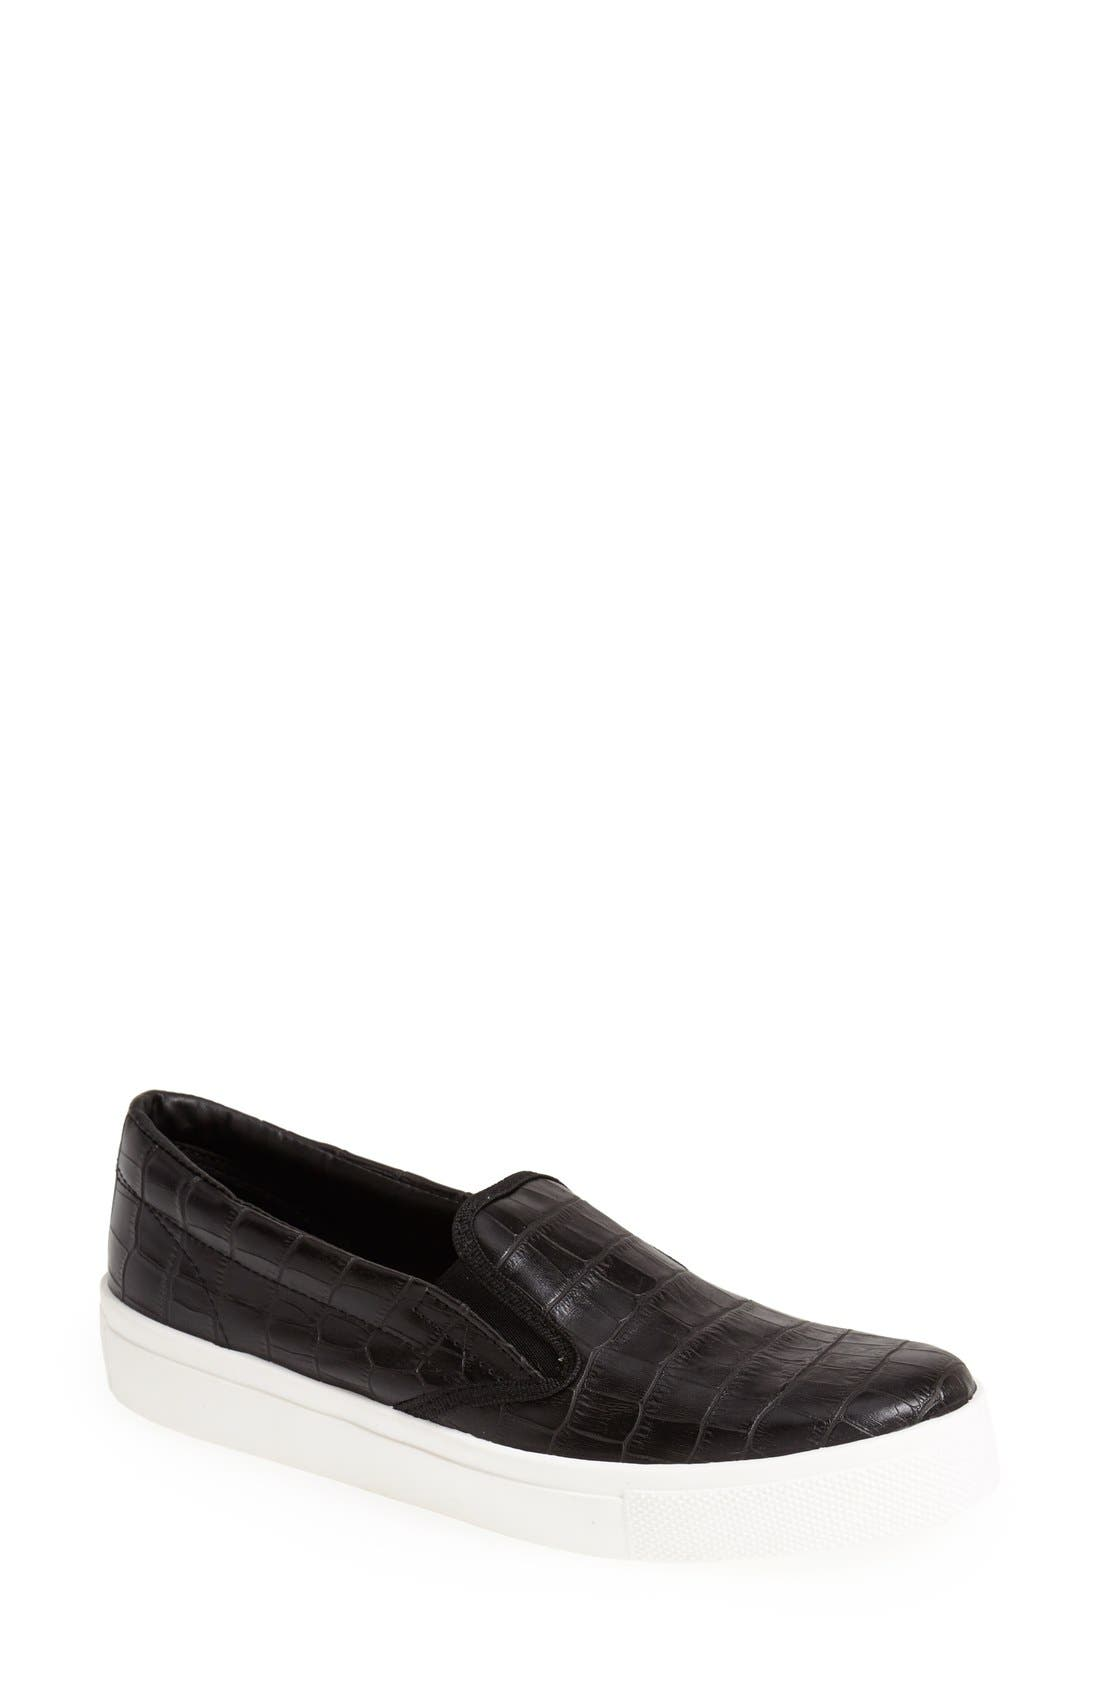 TOPSHOP, 'Tipi' Slip-On, Main thumbnail 1, color, 001